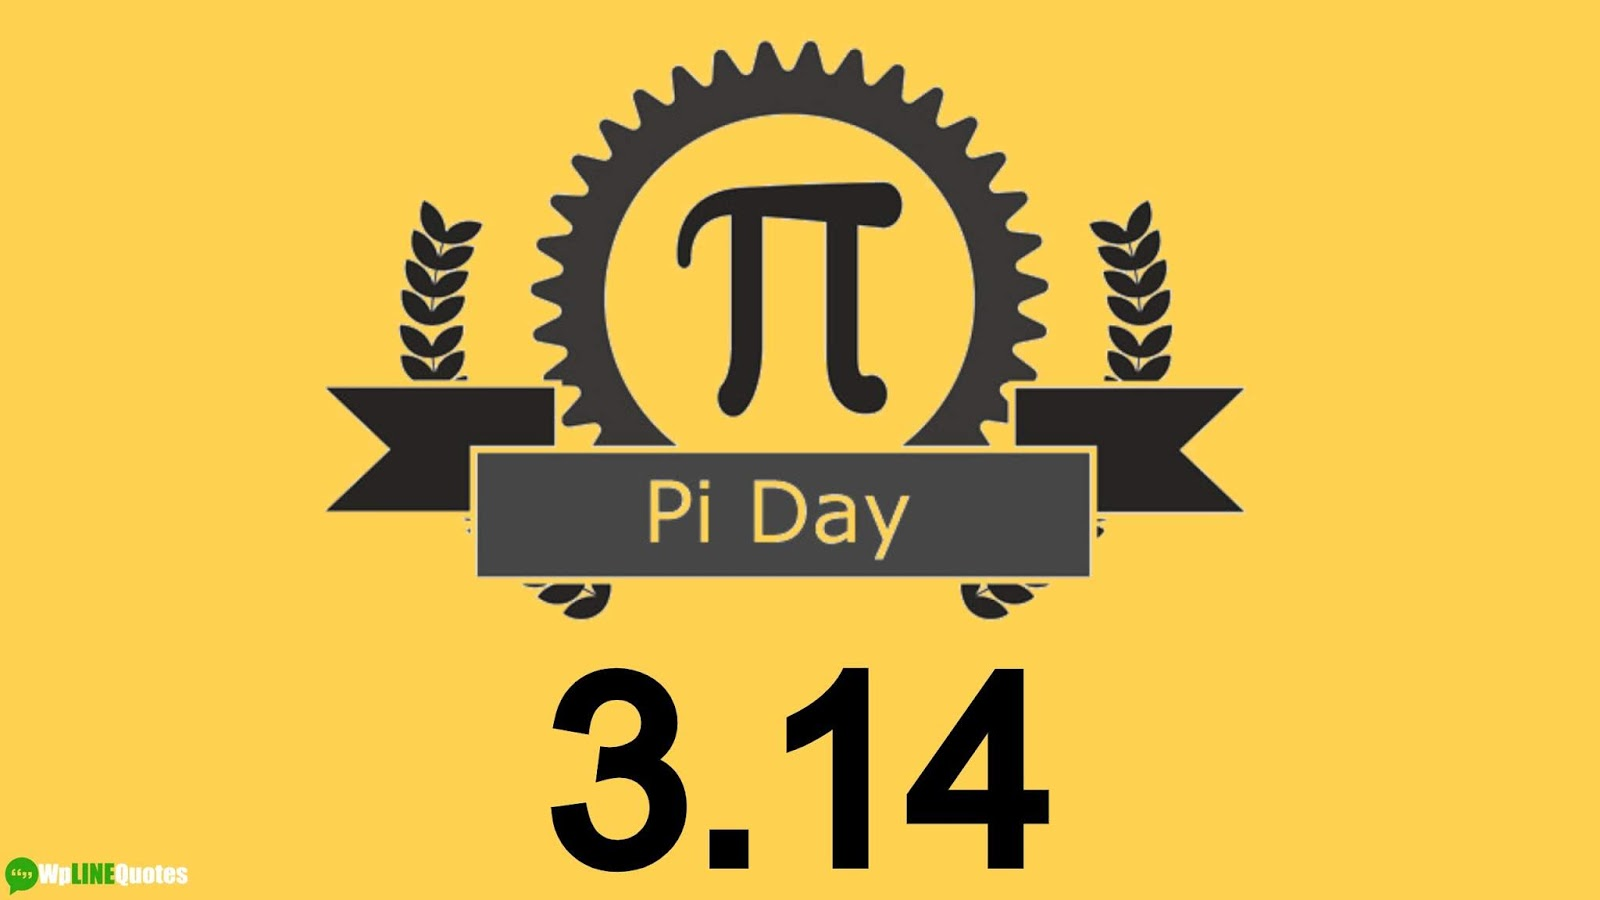 Pi Day Quotes, Wishes, Facts, Meaning, Activities, Images, Posters